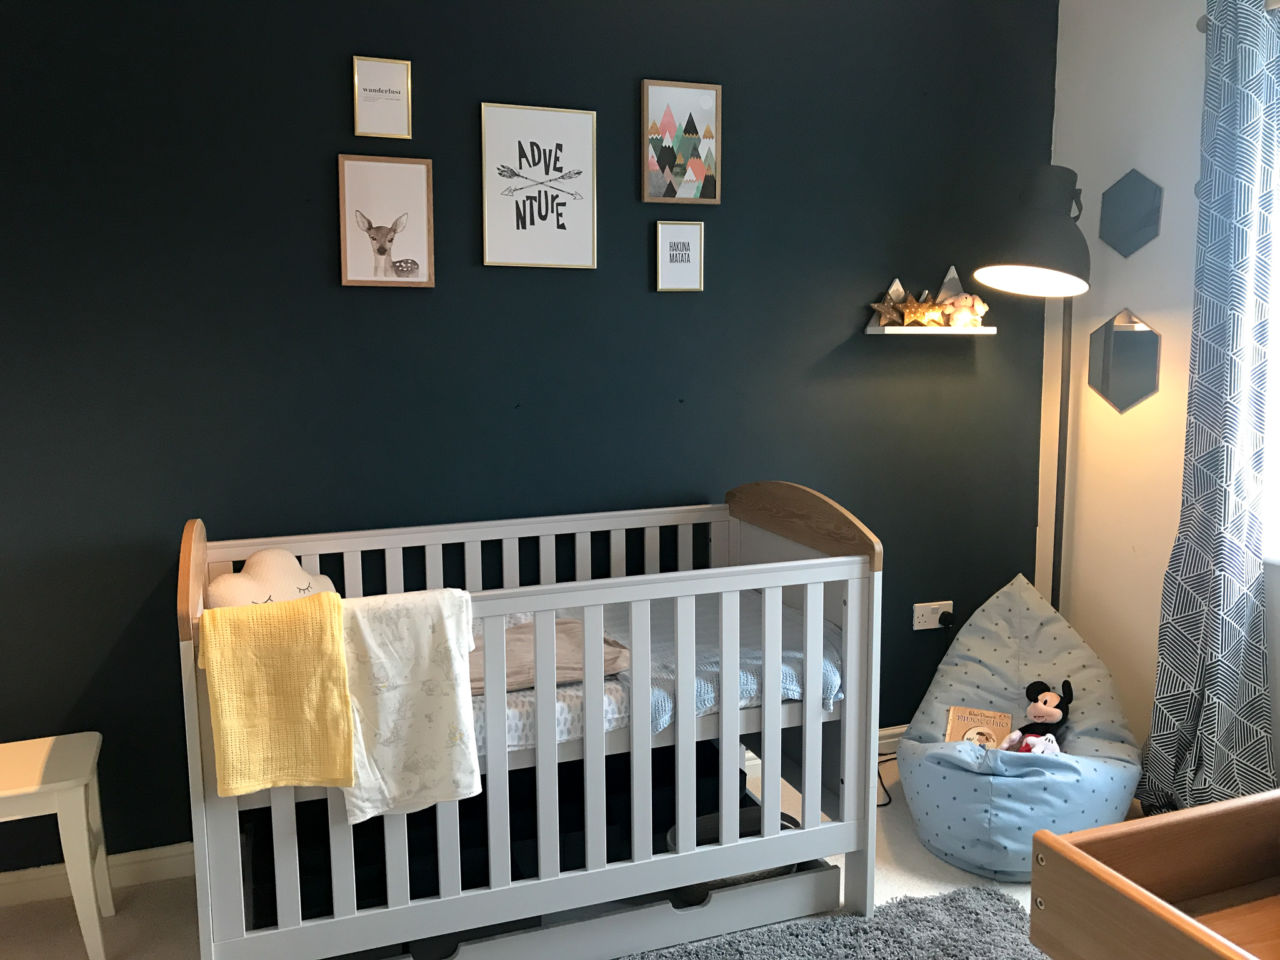 Adventure & nature inspired girl's nursery with woodland, forest & mountain elements - a wanderlust nursery with navy wall